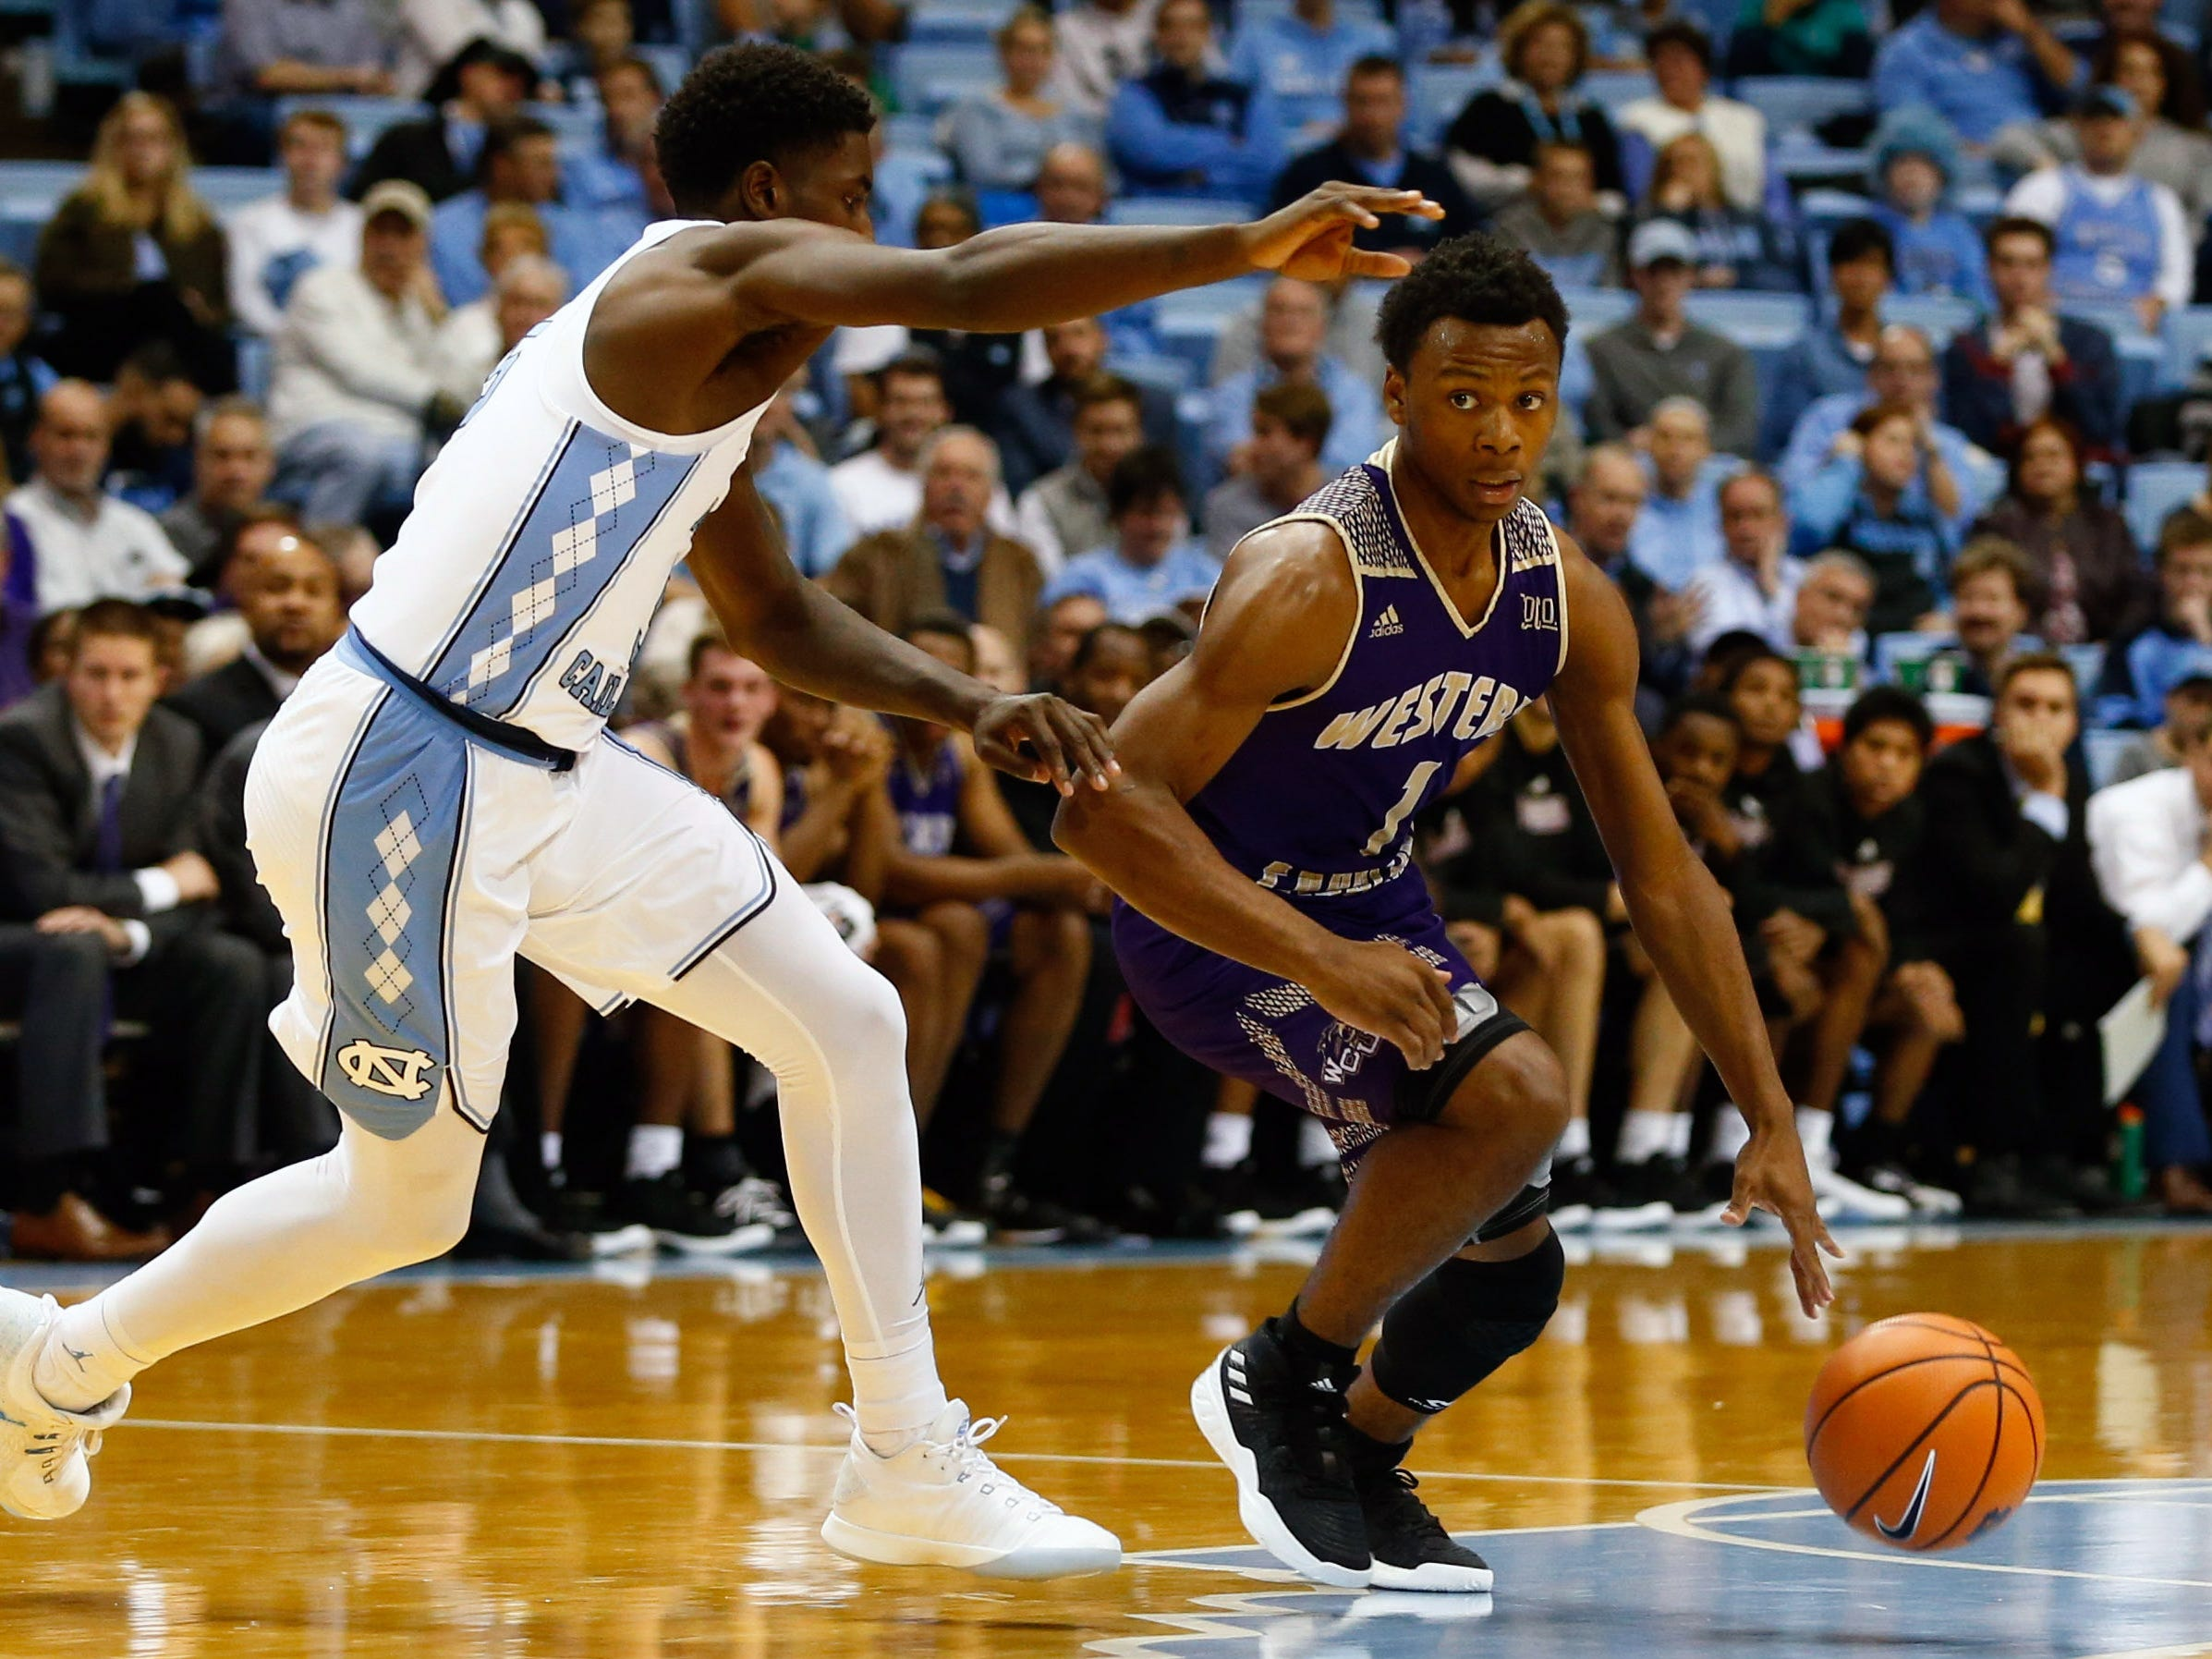 Dec 6, 2017; Chapel Hill, NC, USA; Western Carolina Catamounts guard Desmond Johnson (1) drives the ball against North Carolina Tar Heels guard Jalek Felton (5) in the first half at Dean E. Smith Center. Mandatory Credit: Jeremy Brevard-USA TODAY Sports